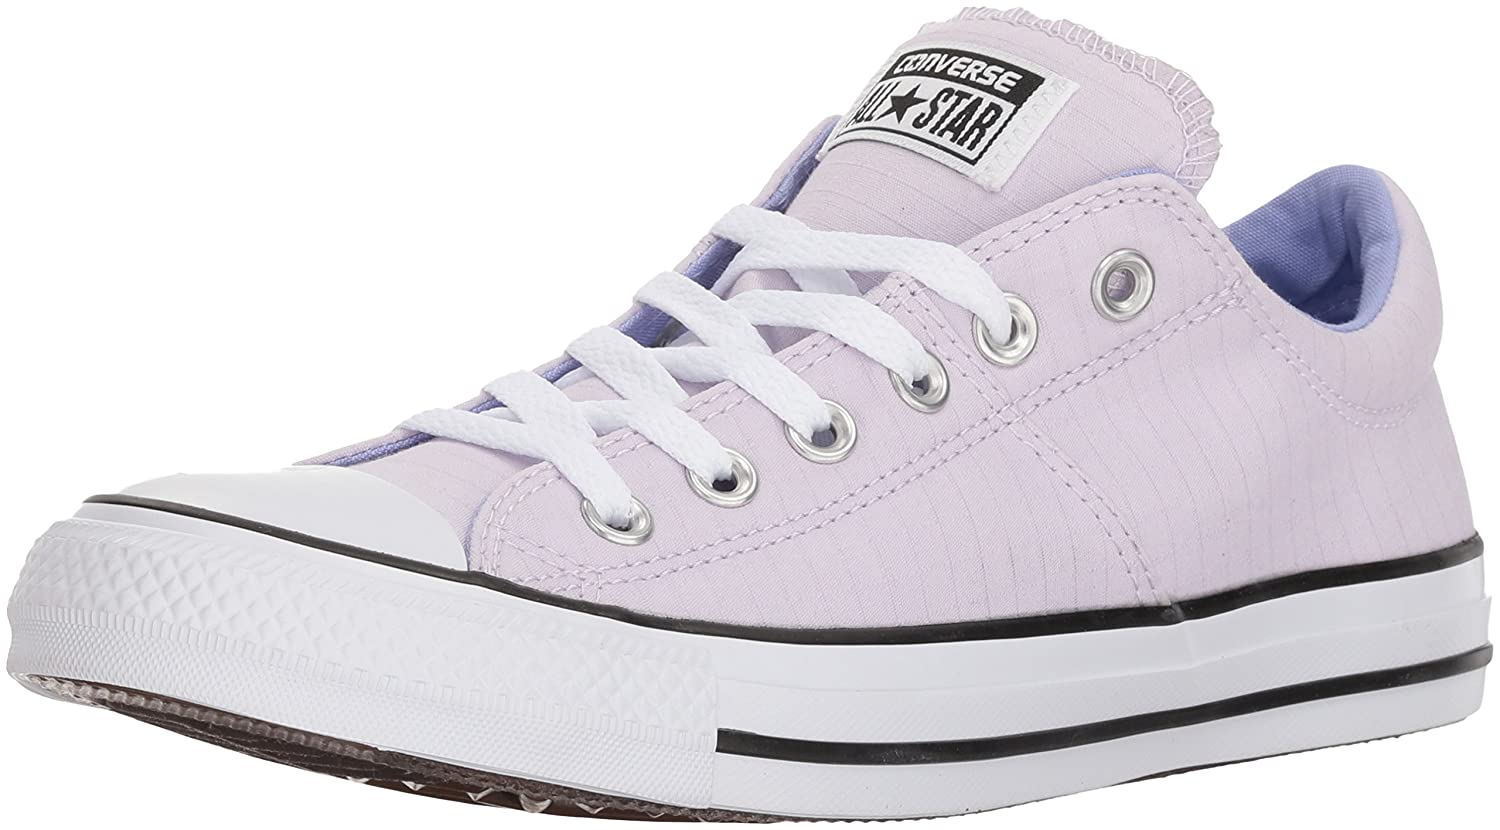 Converse Women's Madison Utility Chambray Low Top Sneaker B073C7KMRK 5.5 B(M) US|Barely Grape/Twilight Pulse